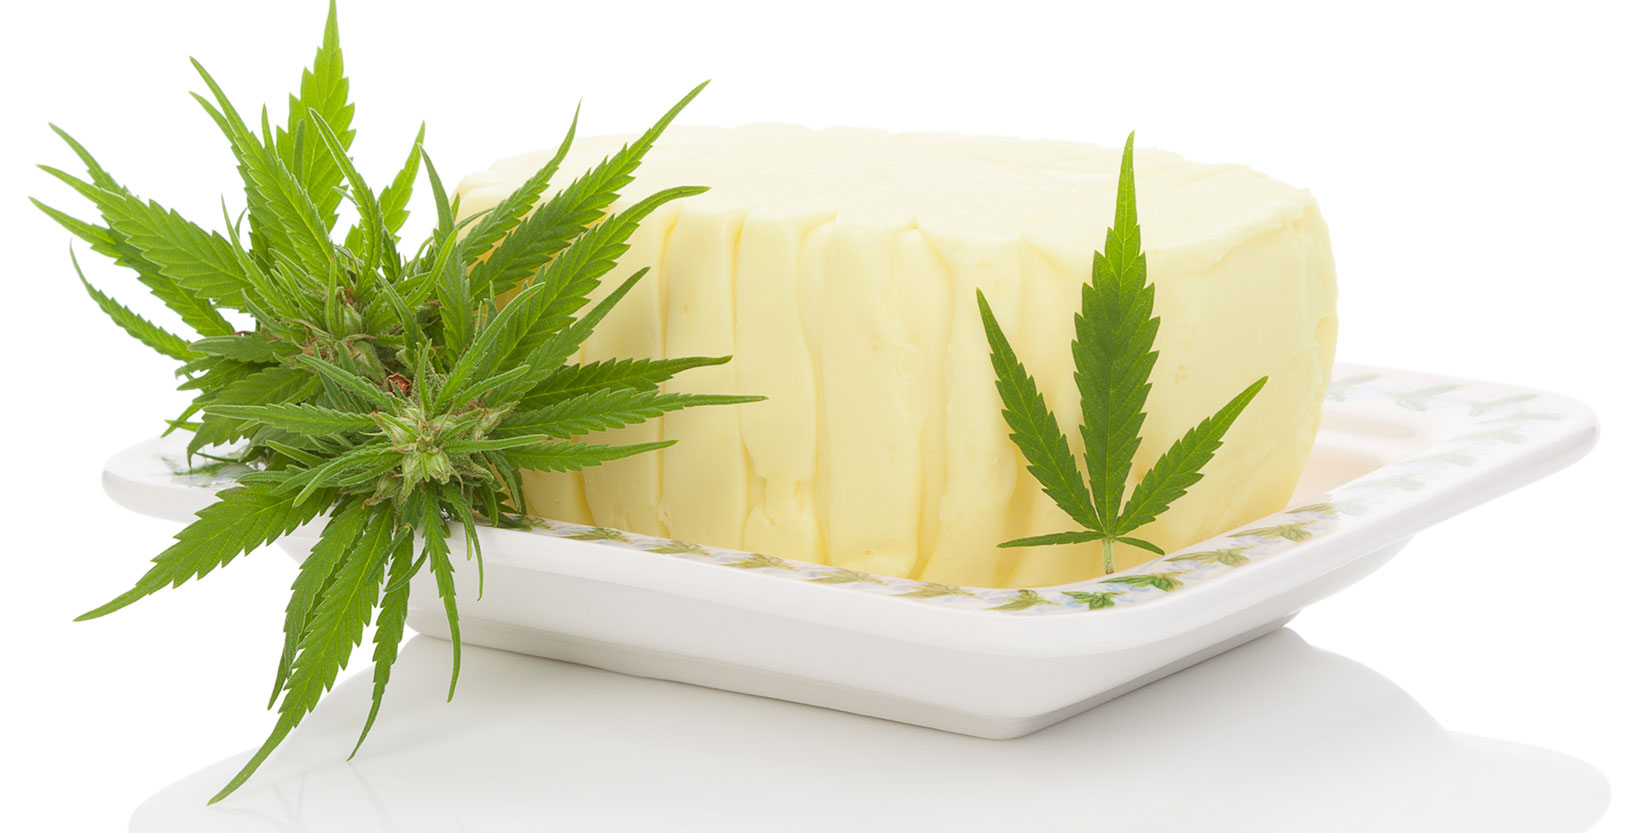 How to make cannabis butter with trimmings